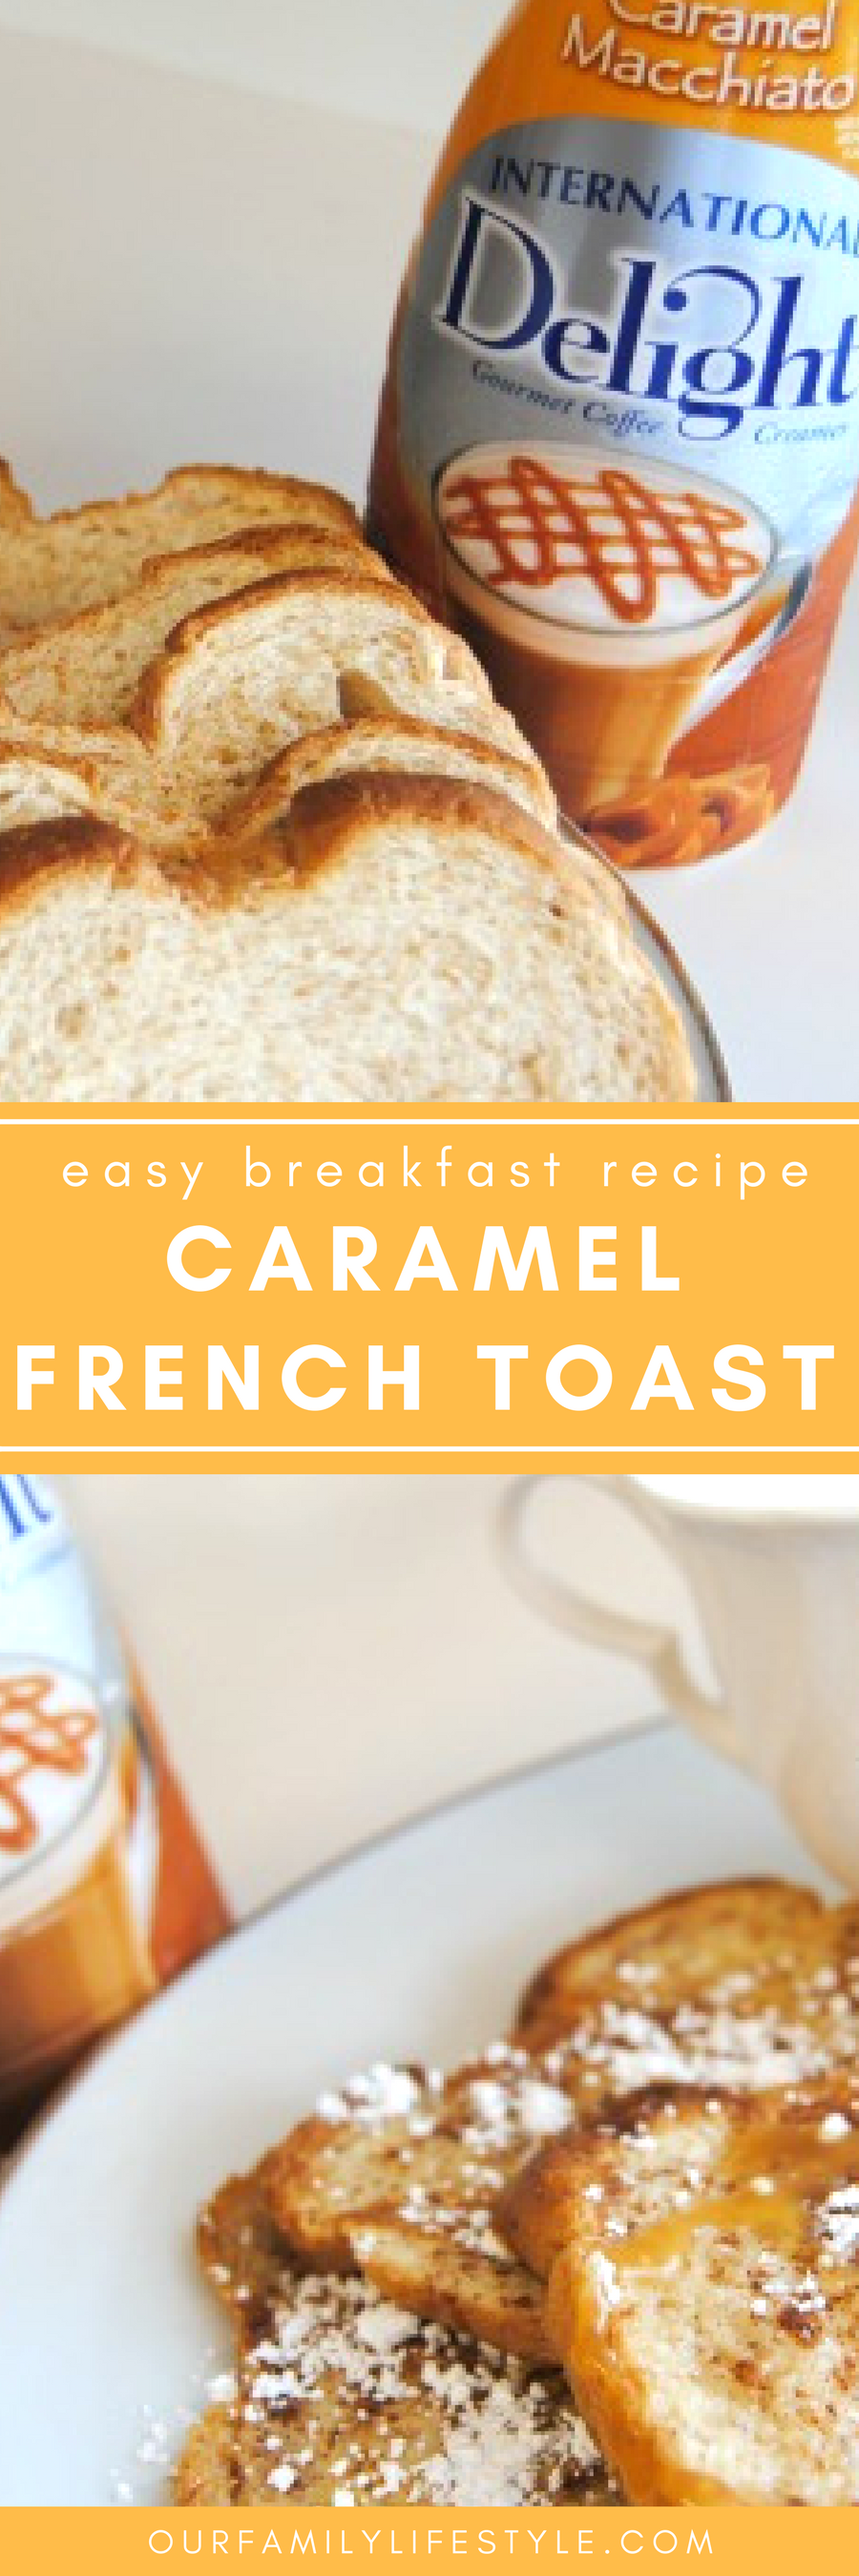 Combining traditional french toast with the smooth-tasting flavor of caramel gives you the perfect Caramel French Toast Recipe.